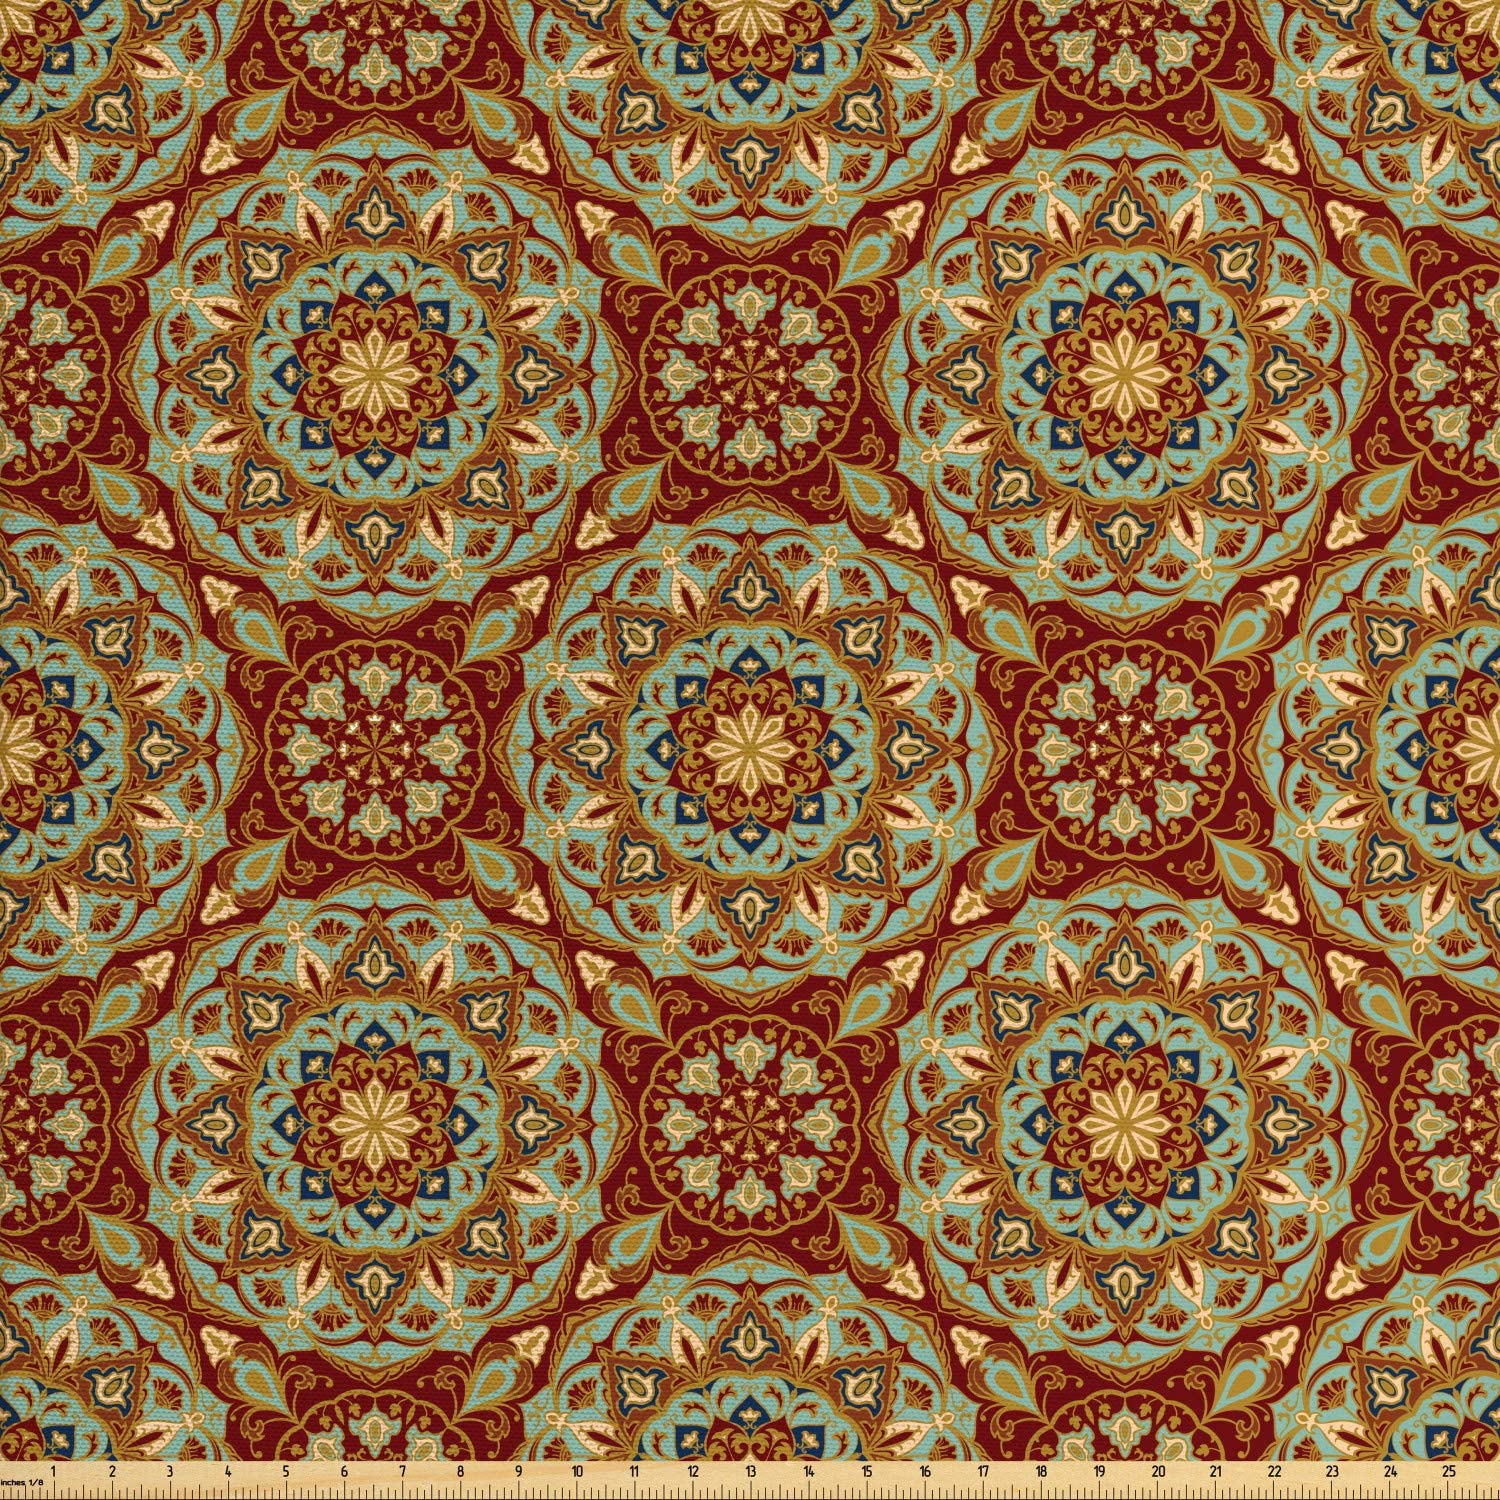 Ambesonne Mandala Fabric by The Yard, Abstract Flora Pattern Medieval Mosaic Tile Design, Decorative Fabric for Upholstery and Home Accents, Pale Coffee Pale Blue Ruby